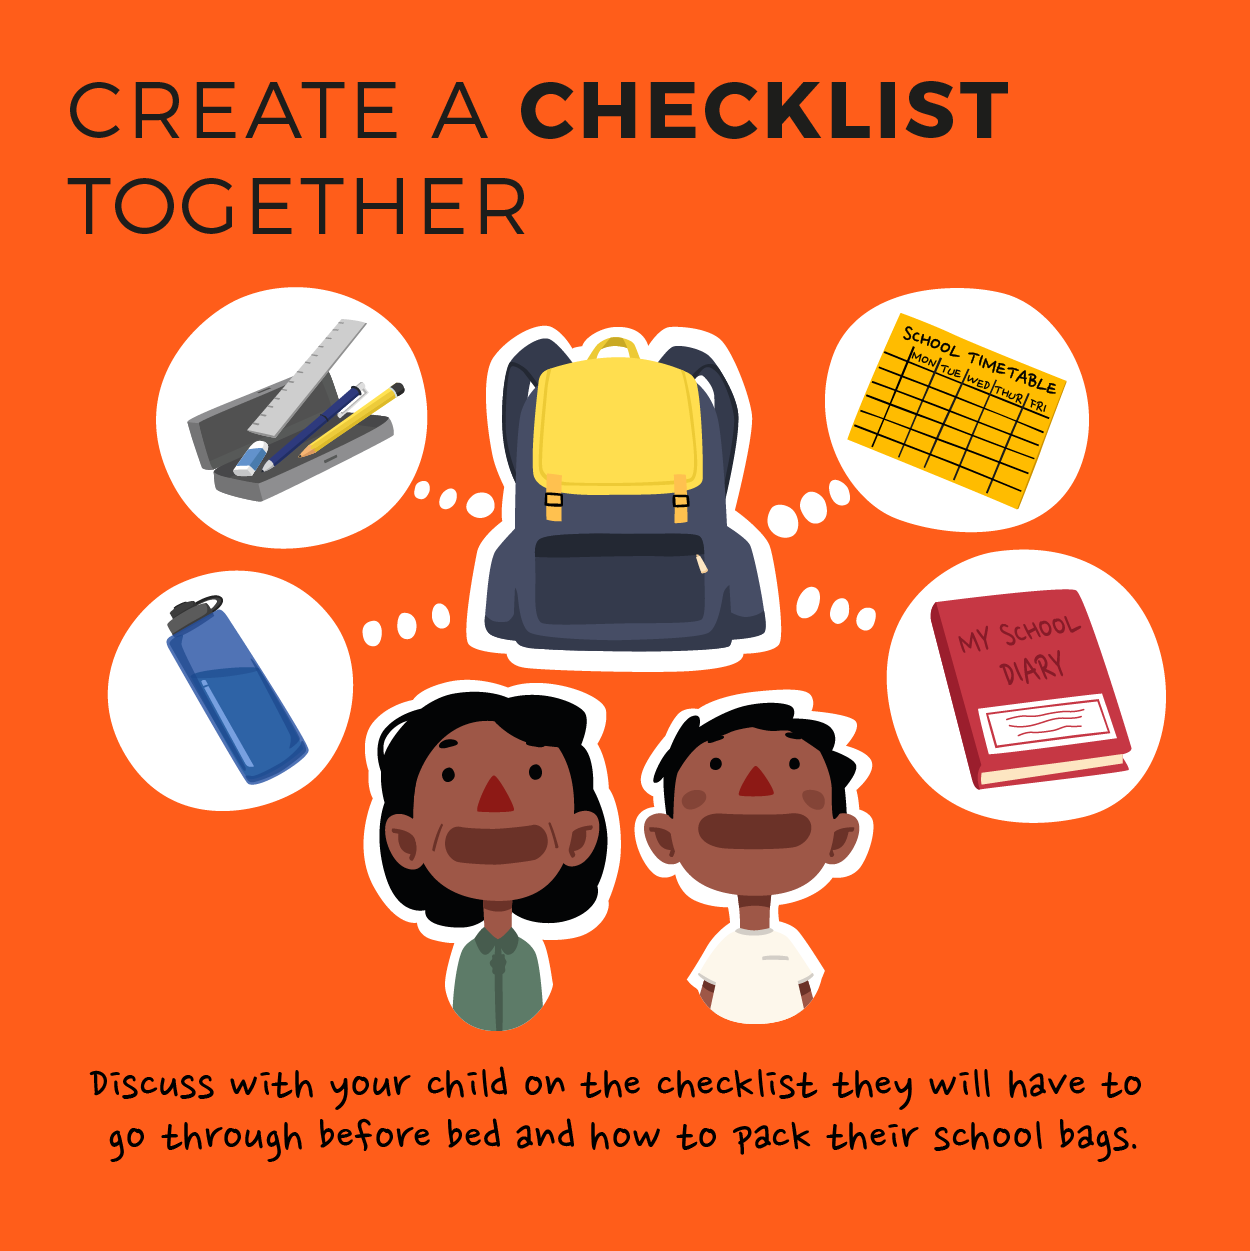 Make a checklist together